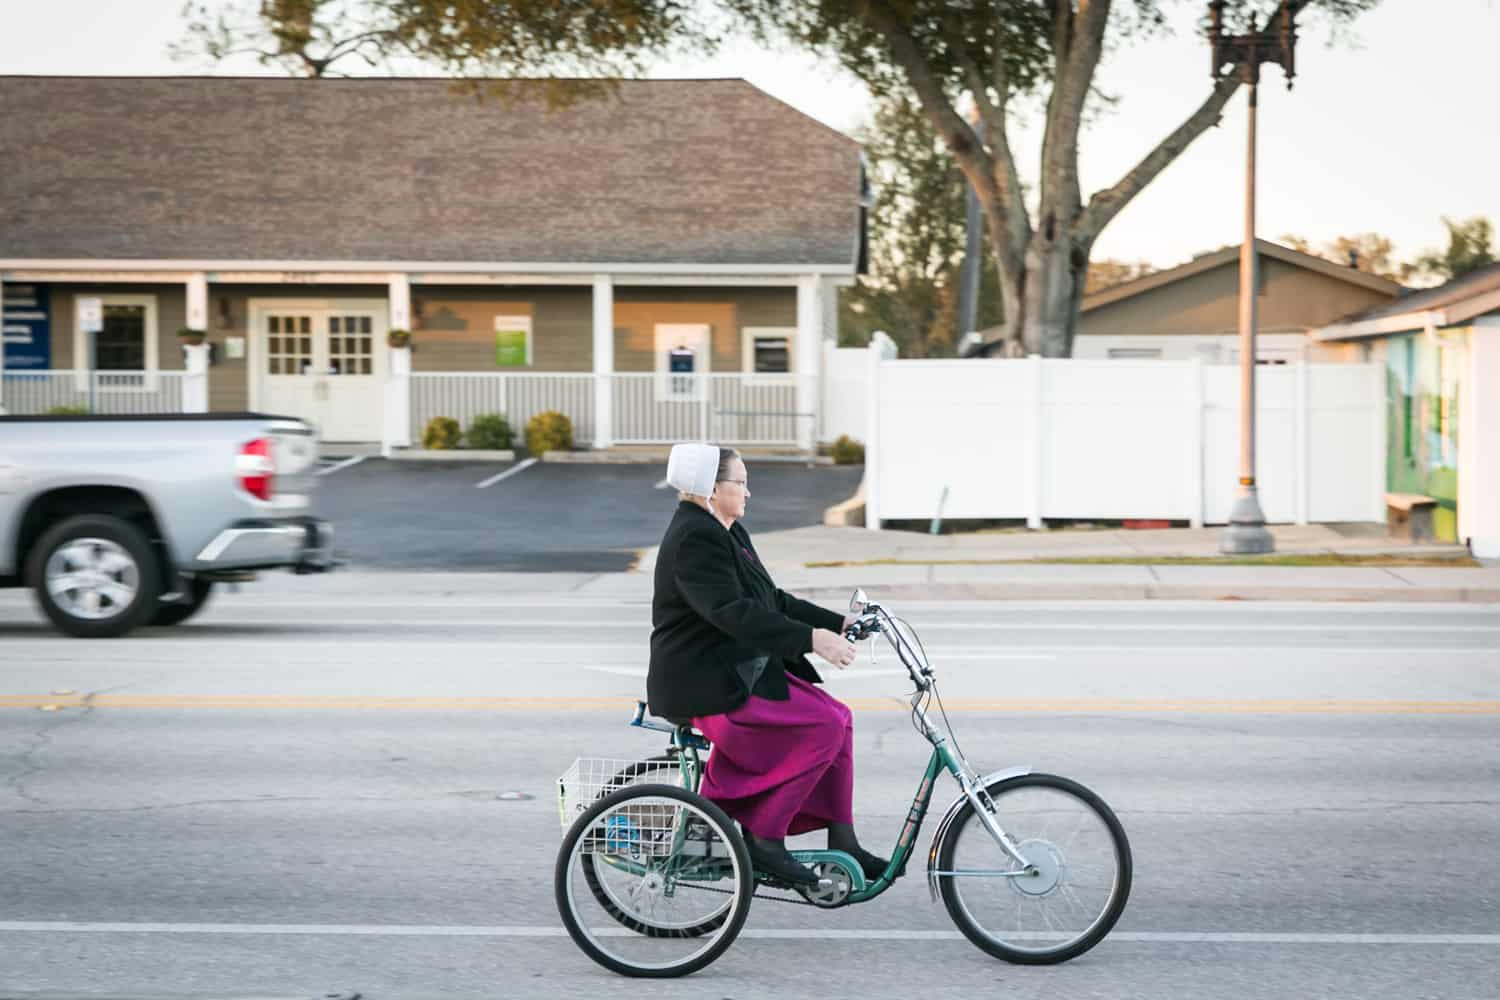 Photos of Sarasota including woman wearing bonnet on bicycle in Pinecraft